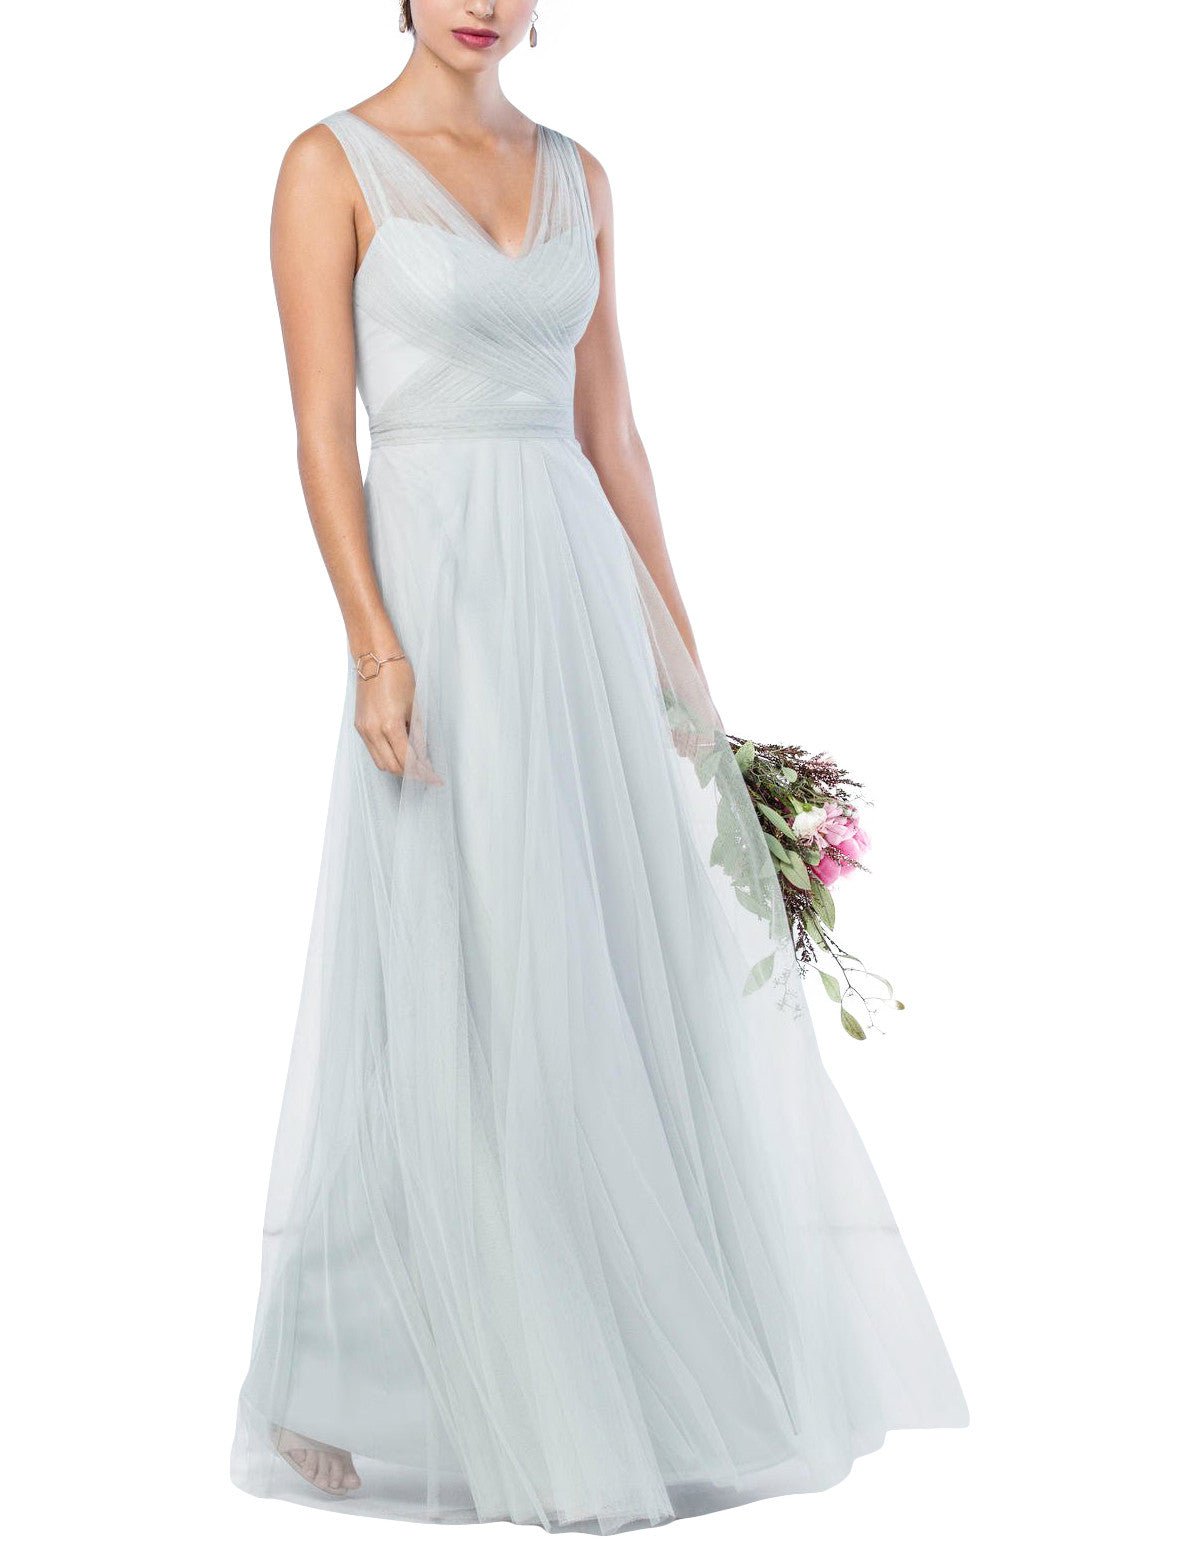 3493c266517 Wtoo by Watters Style 343 Bridesmaid Dress